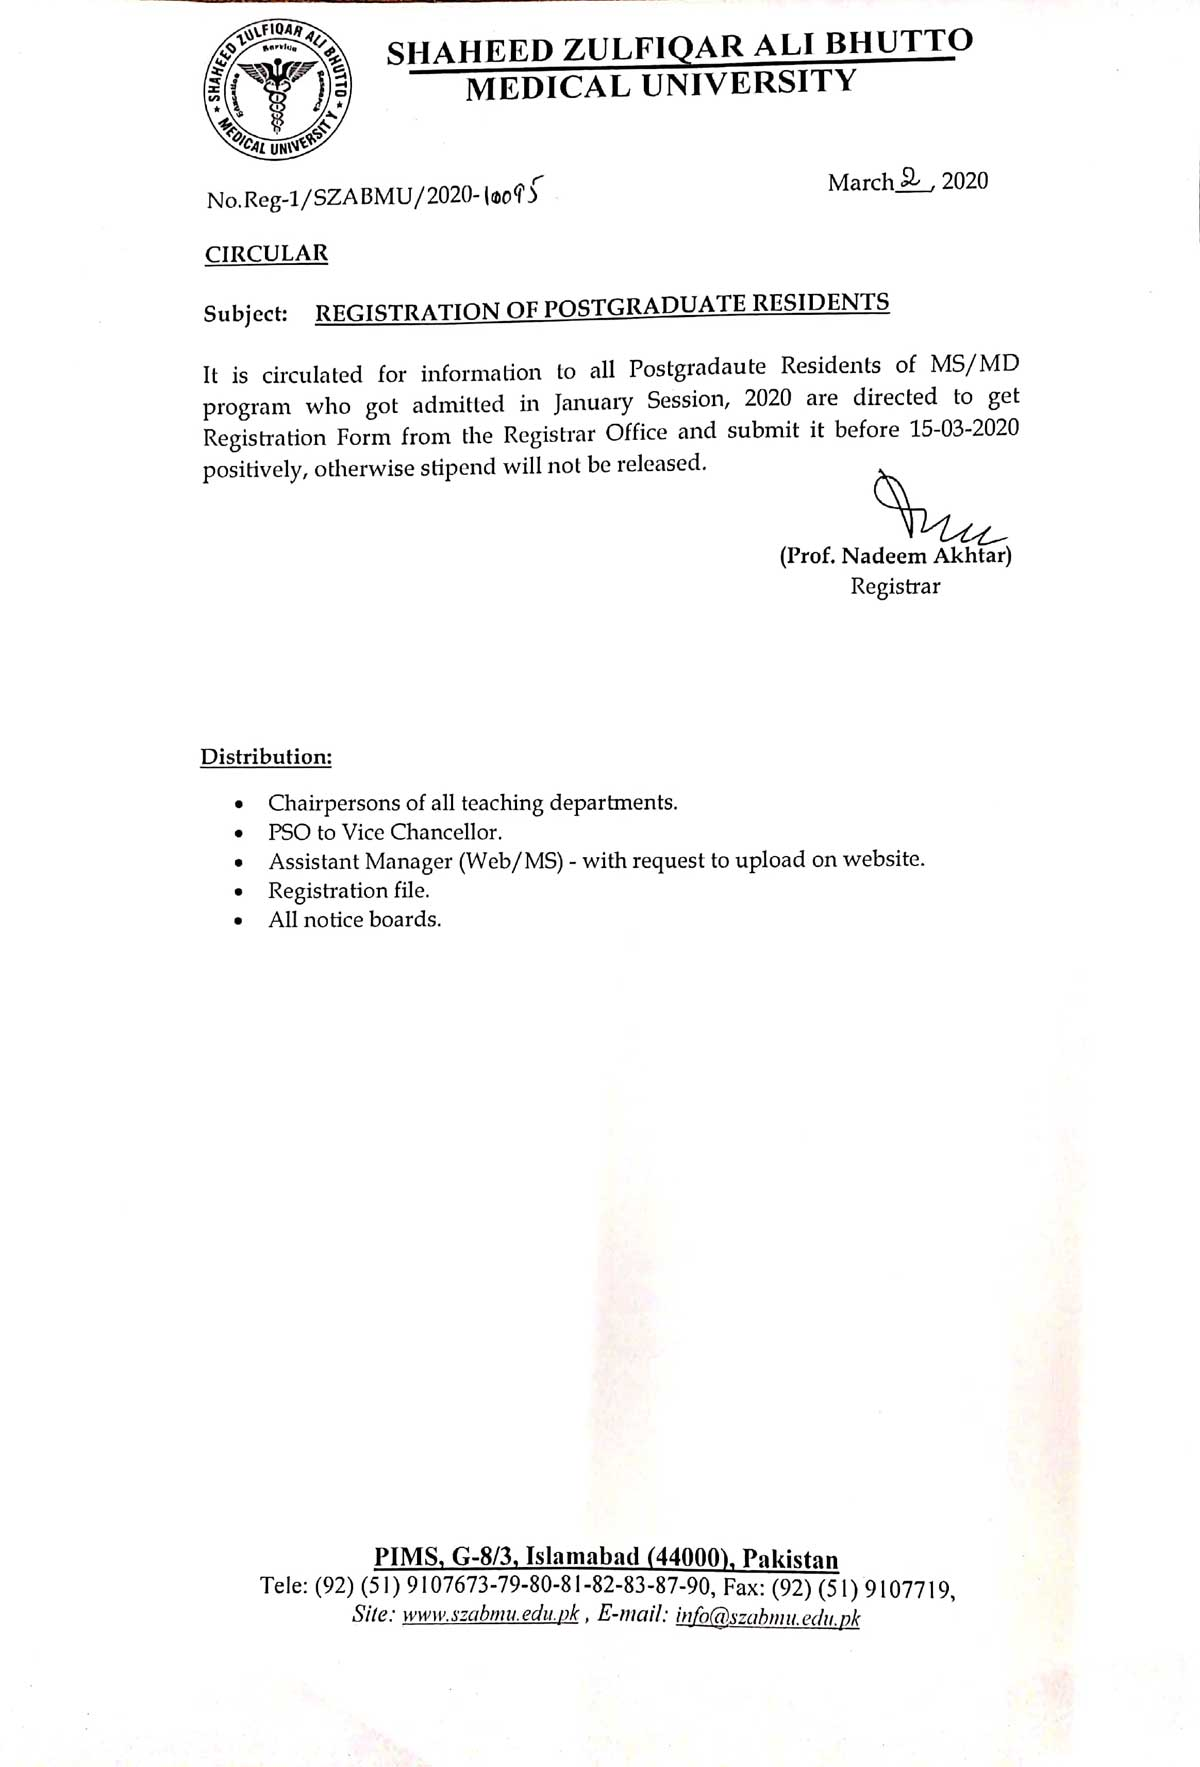 Registration of Postgraduate Residents of MS/MD/MDS for Session January, 2020